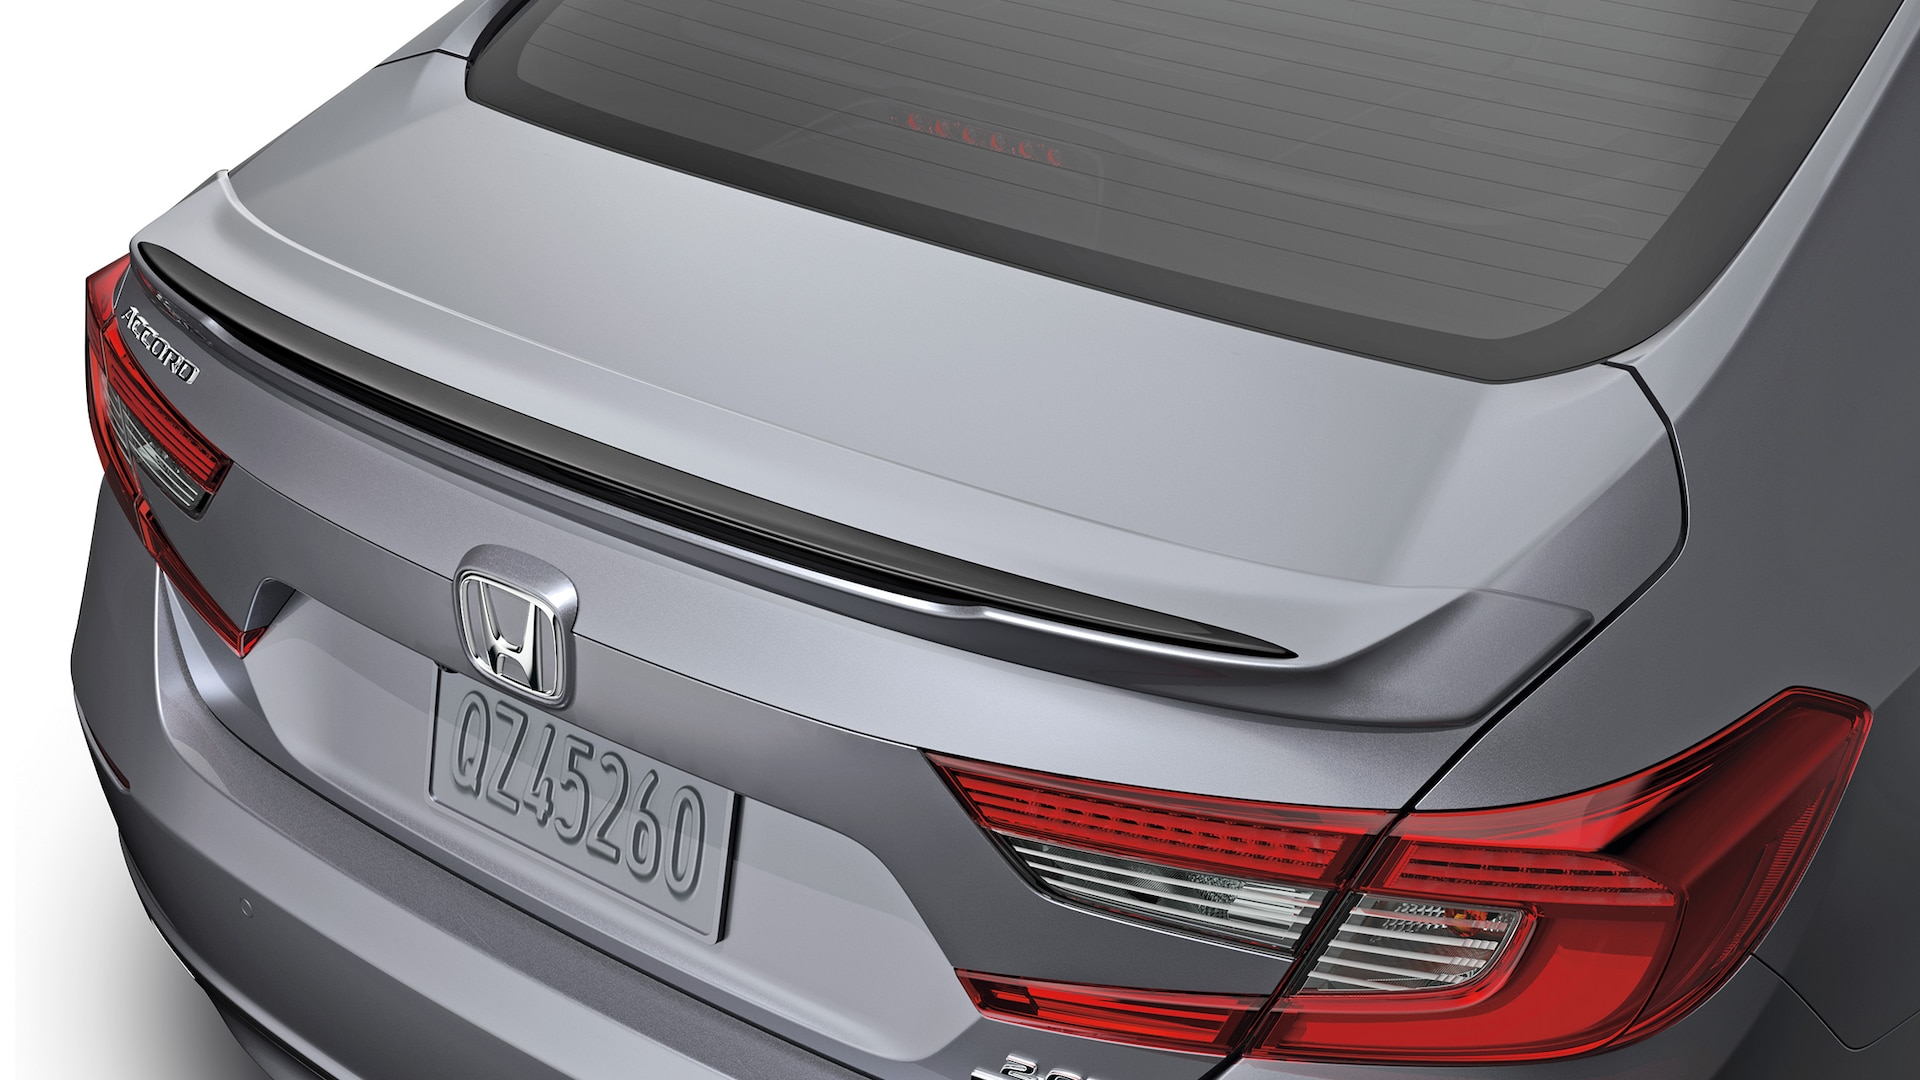 Decklid spoiler accessory detail on the 2020 Honda Accord.